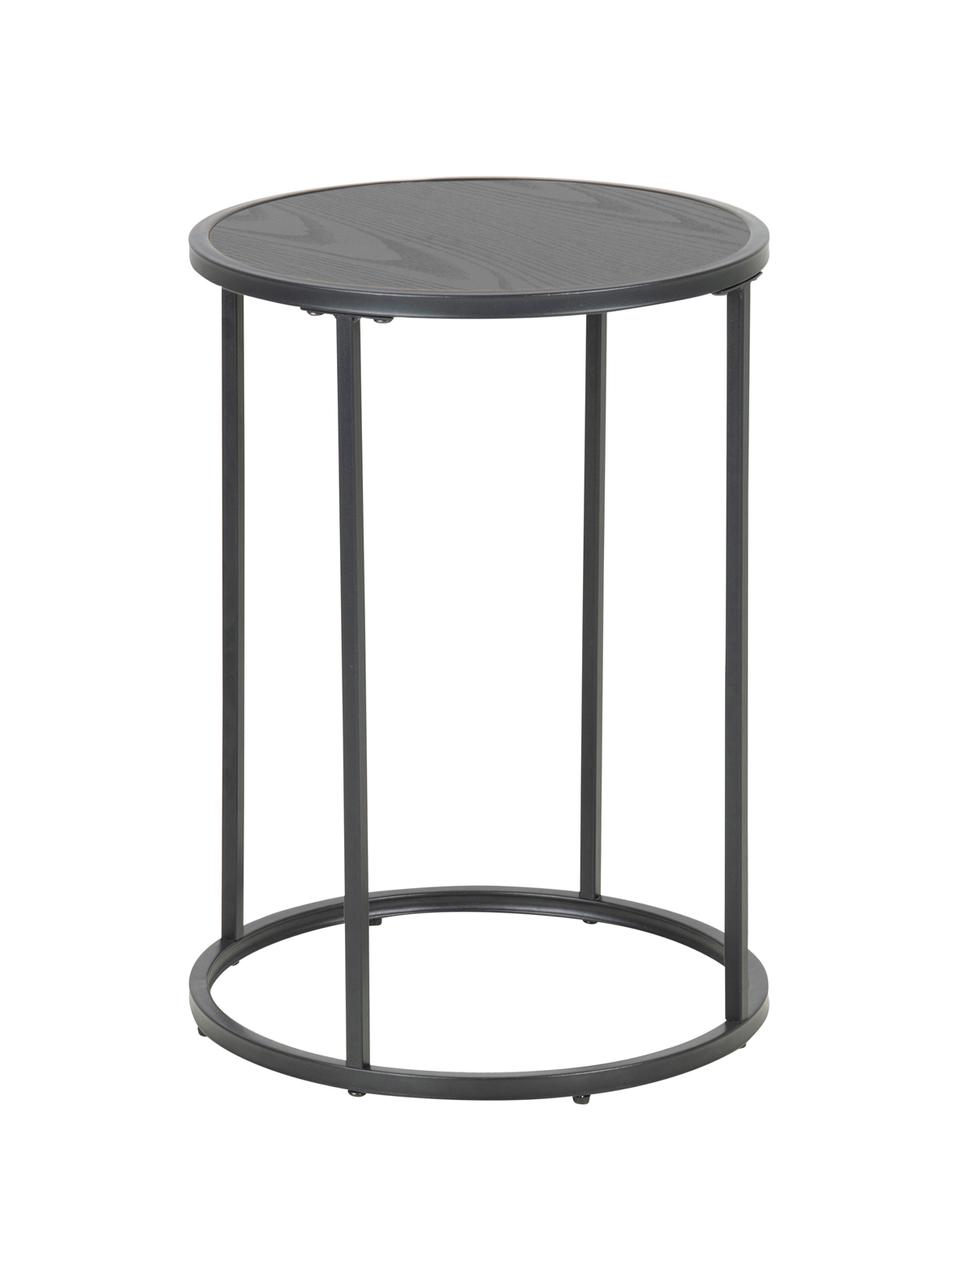 Table d'appoint ronde Seaford, Noir